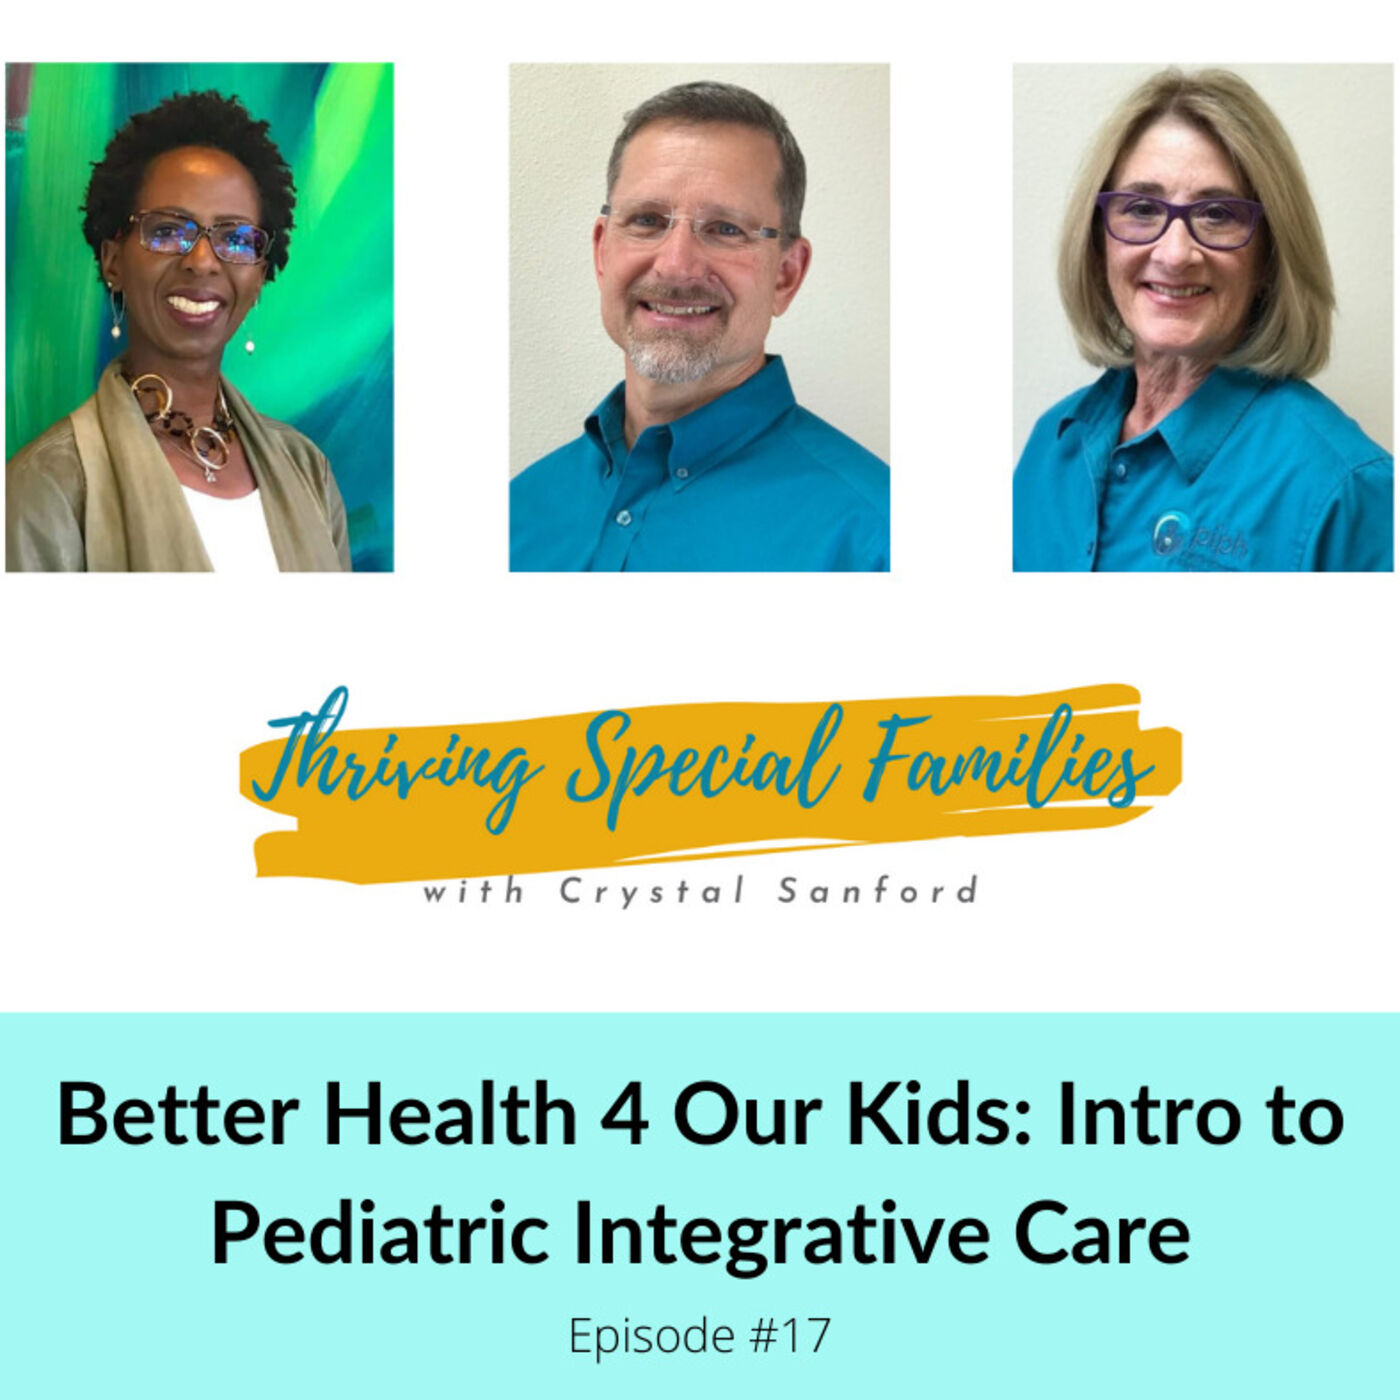 Better Health 4 Our Kids: Intro to Pediatric Integrative Care